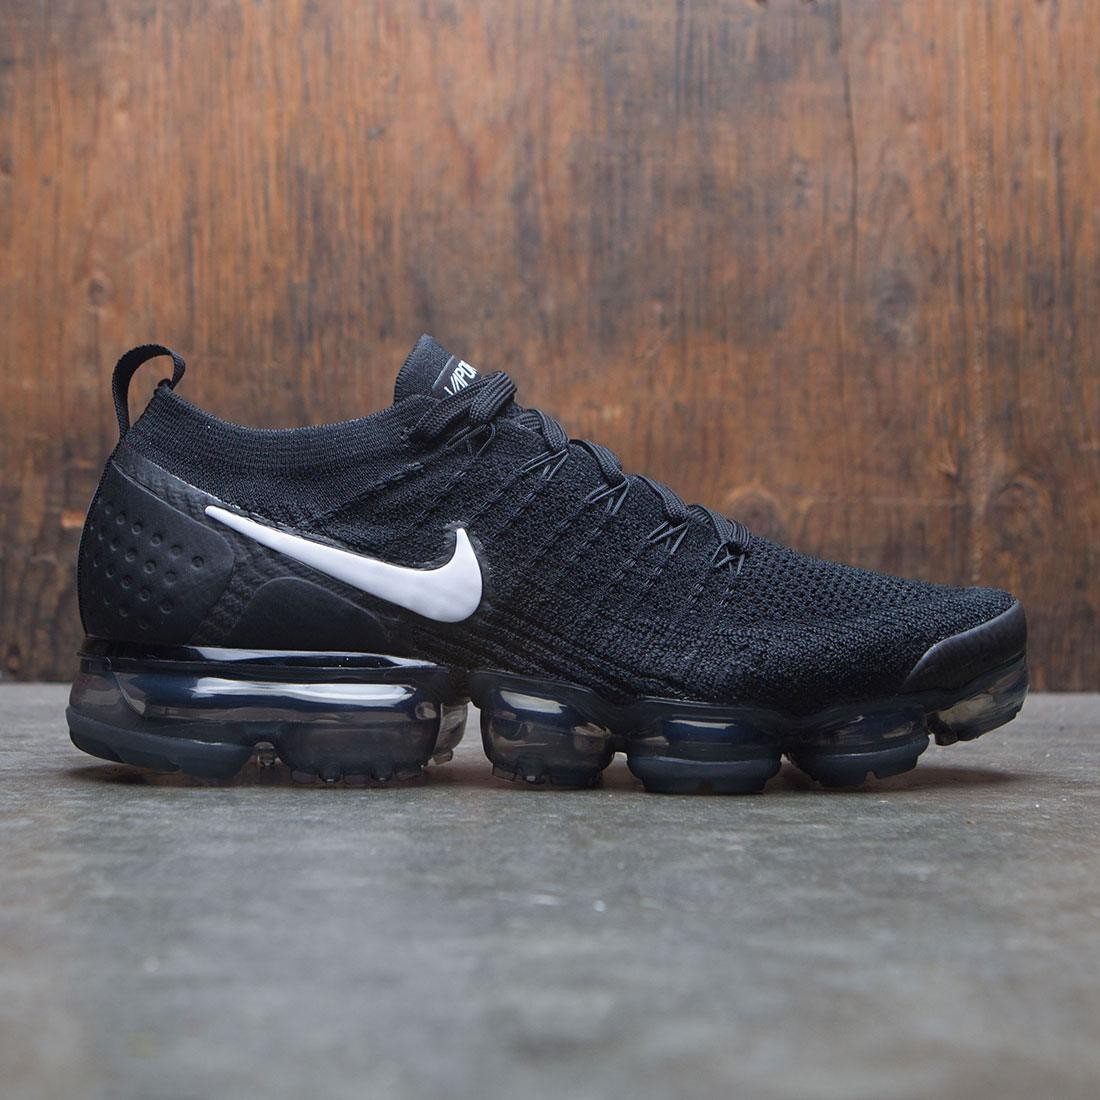 55a0d86fafe0 nike men air vapormax flyknit 2 black white dark grey metallic silver